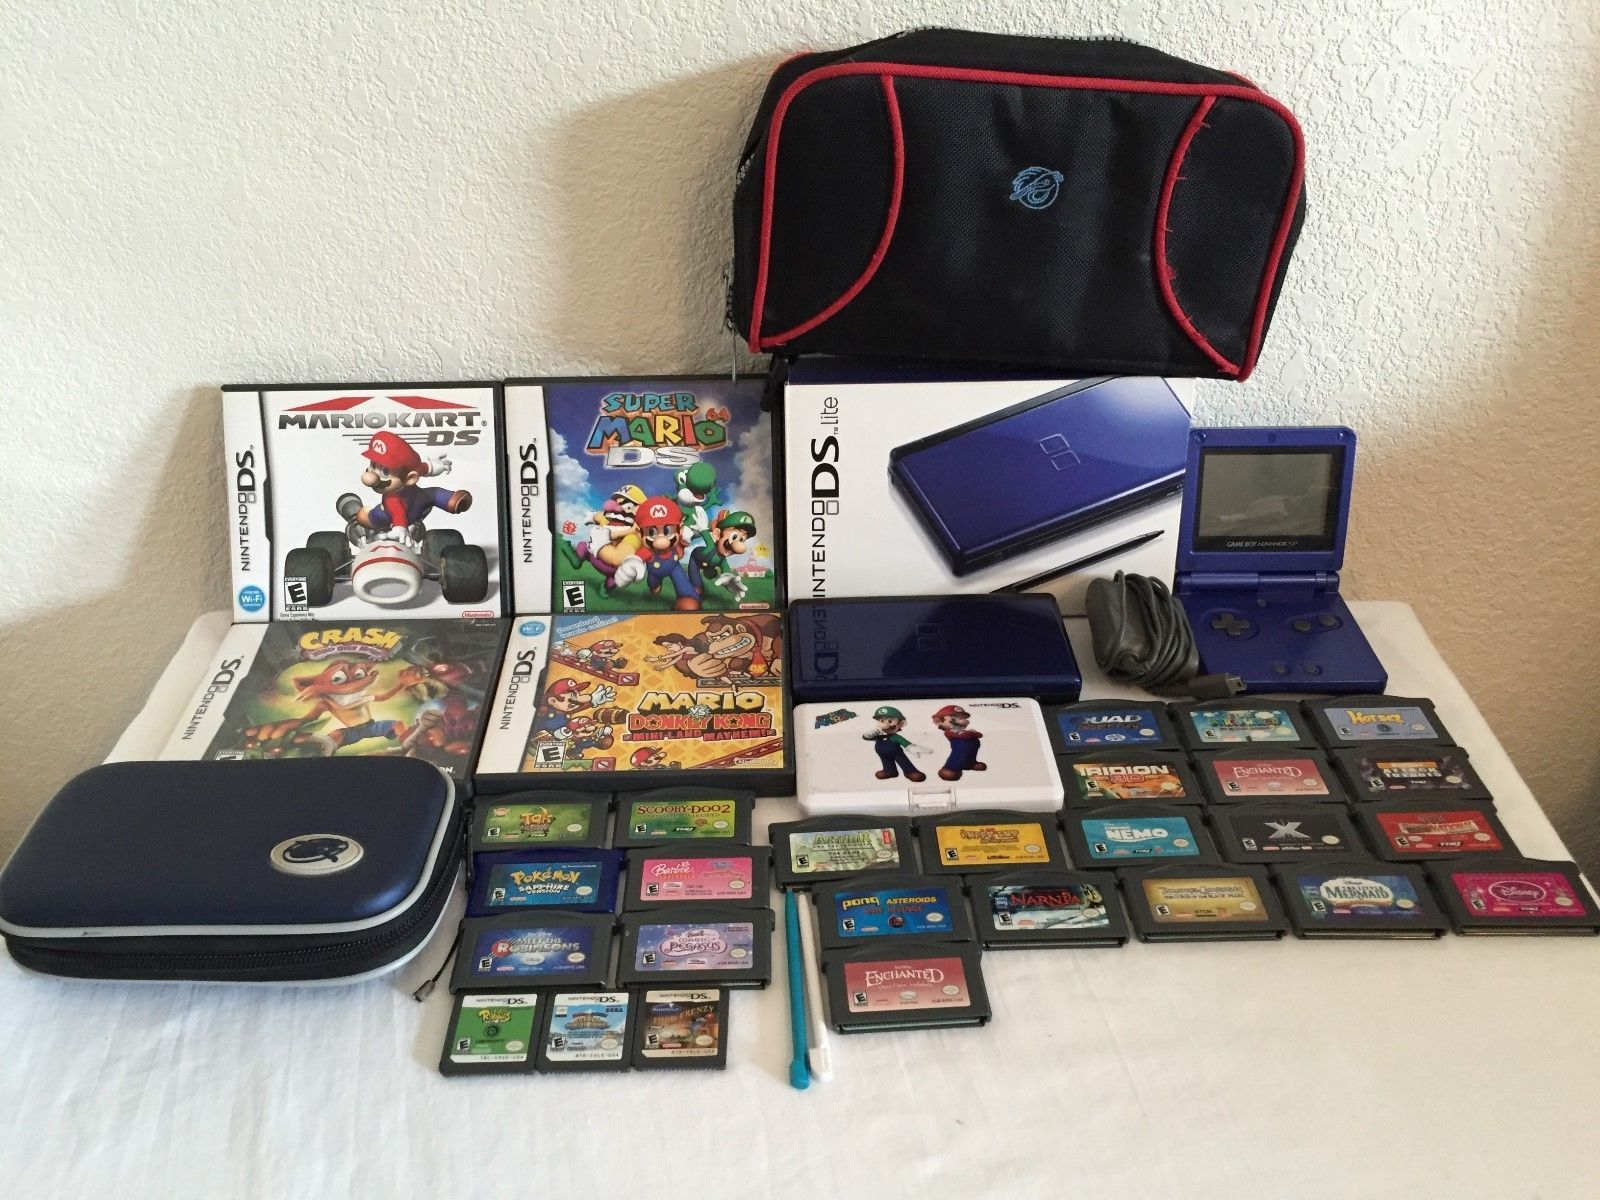 Nintendo DS Lite Bundle  Game Boy Advance SP 31 Games  https://t.co/DEGGq7lqjb https://t.co/OCzjwdFhQE